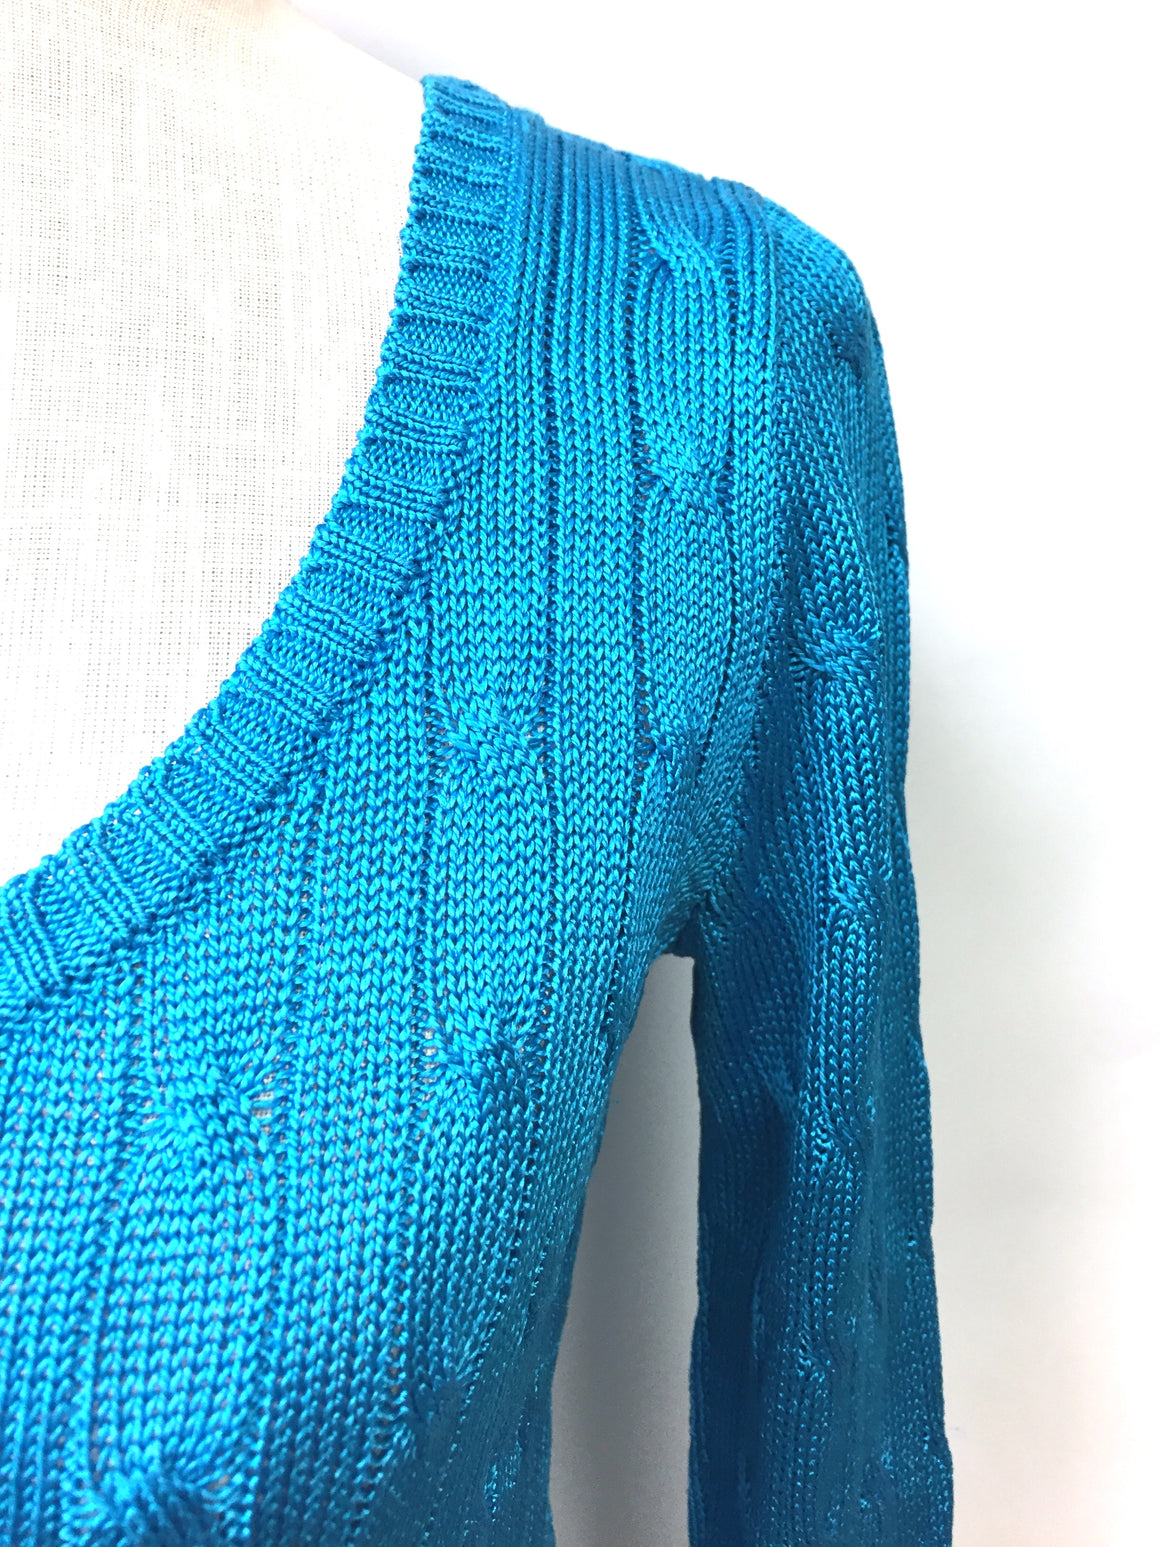 RALPH LAUREN  Turquoise Silk Calbe-Knit Scoop-Neck Sweater Top Size: Small